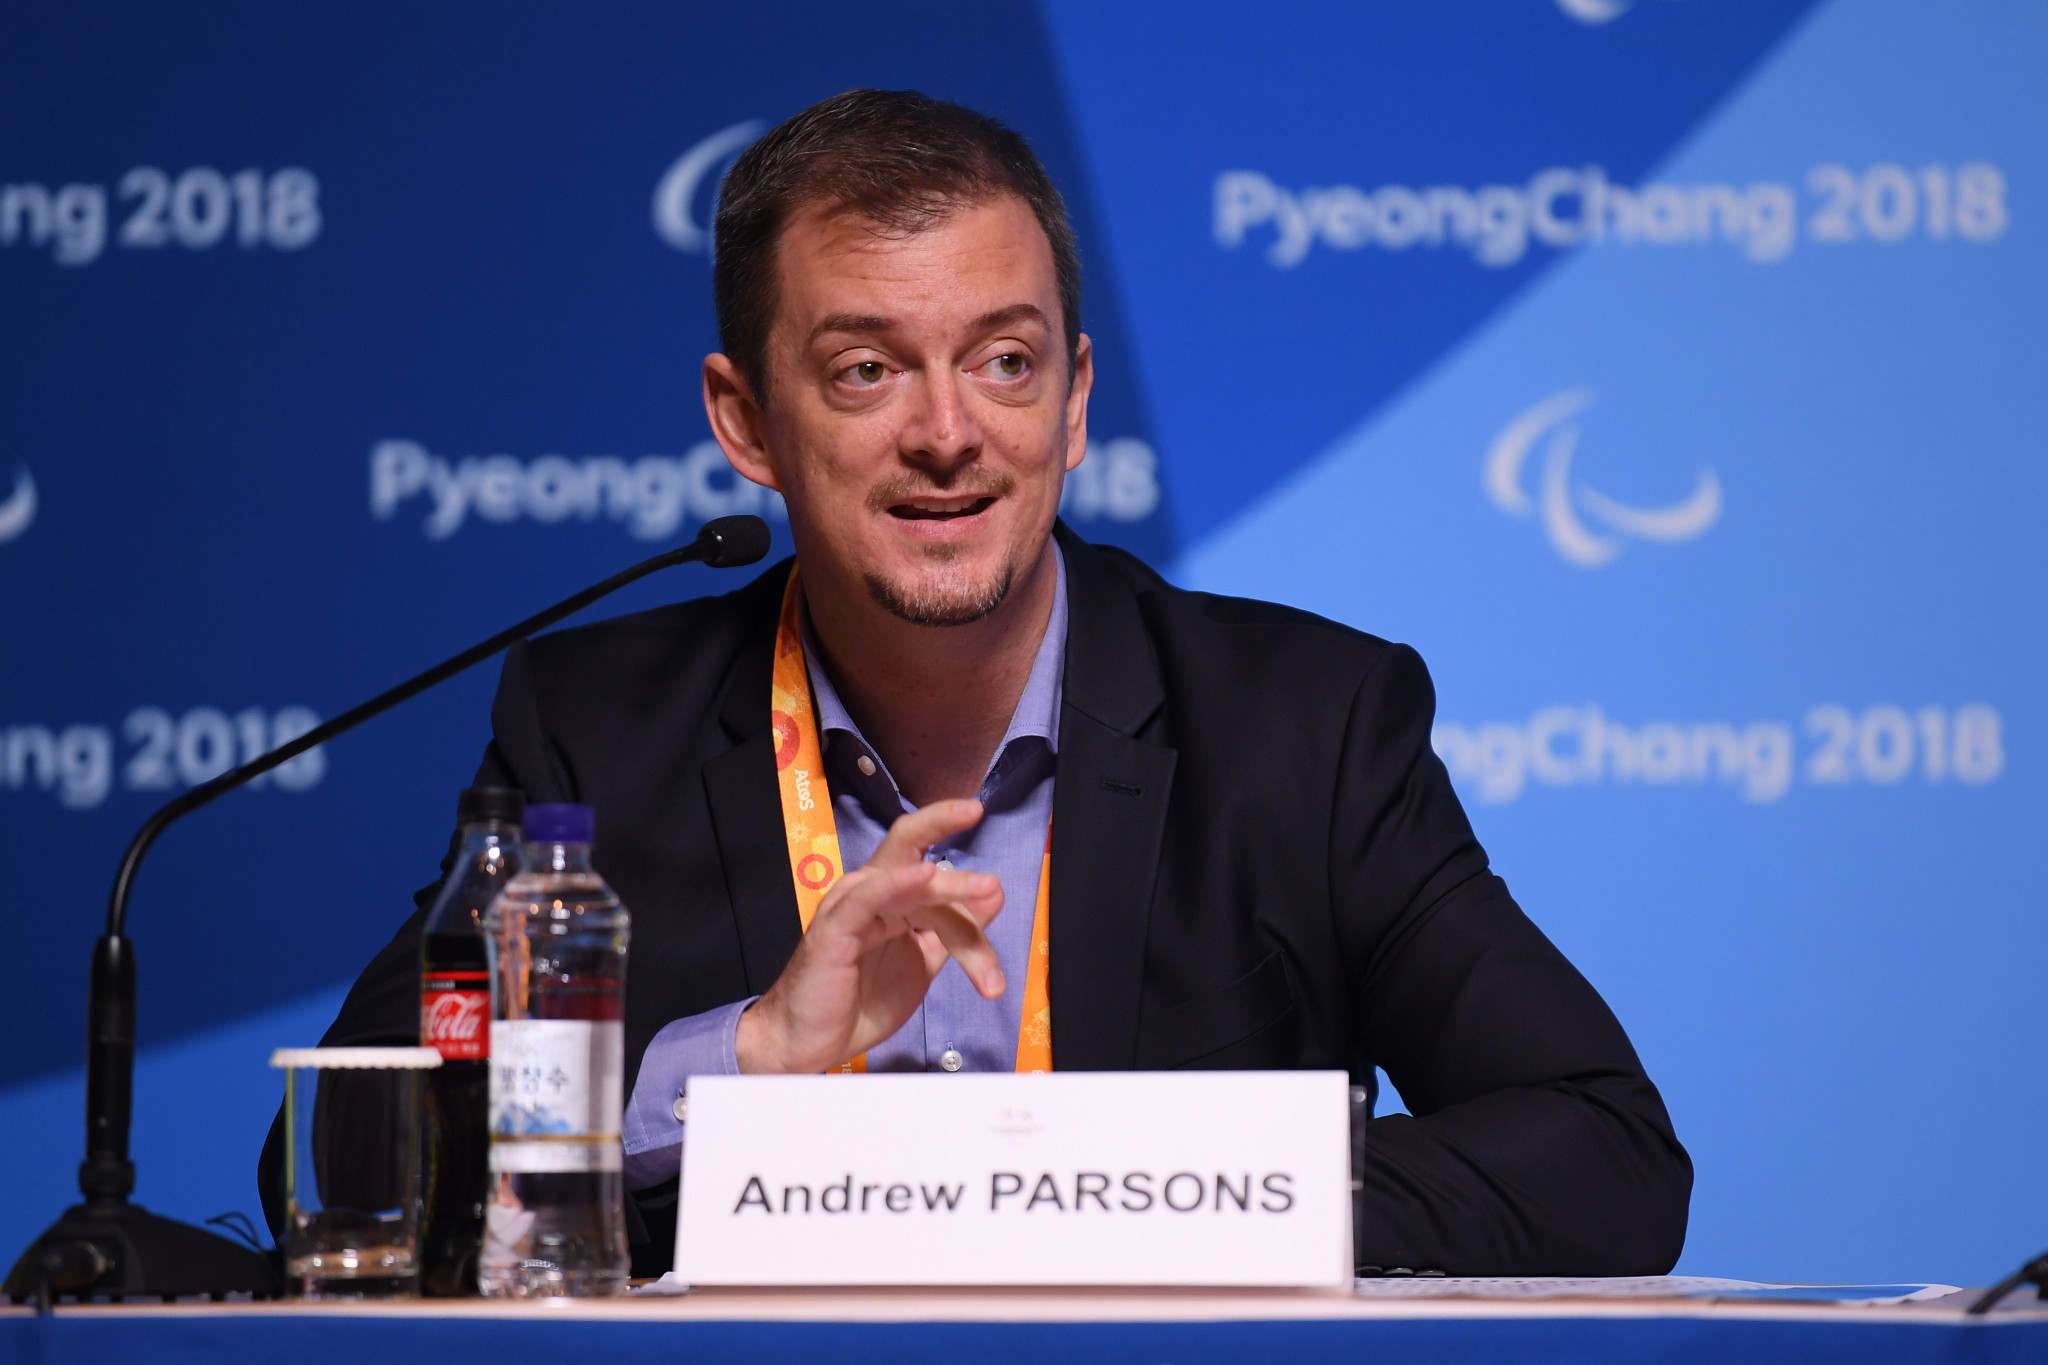 IPC President claims classification will not be an issue at Pyeongchang 2018